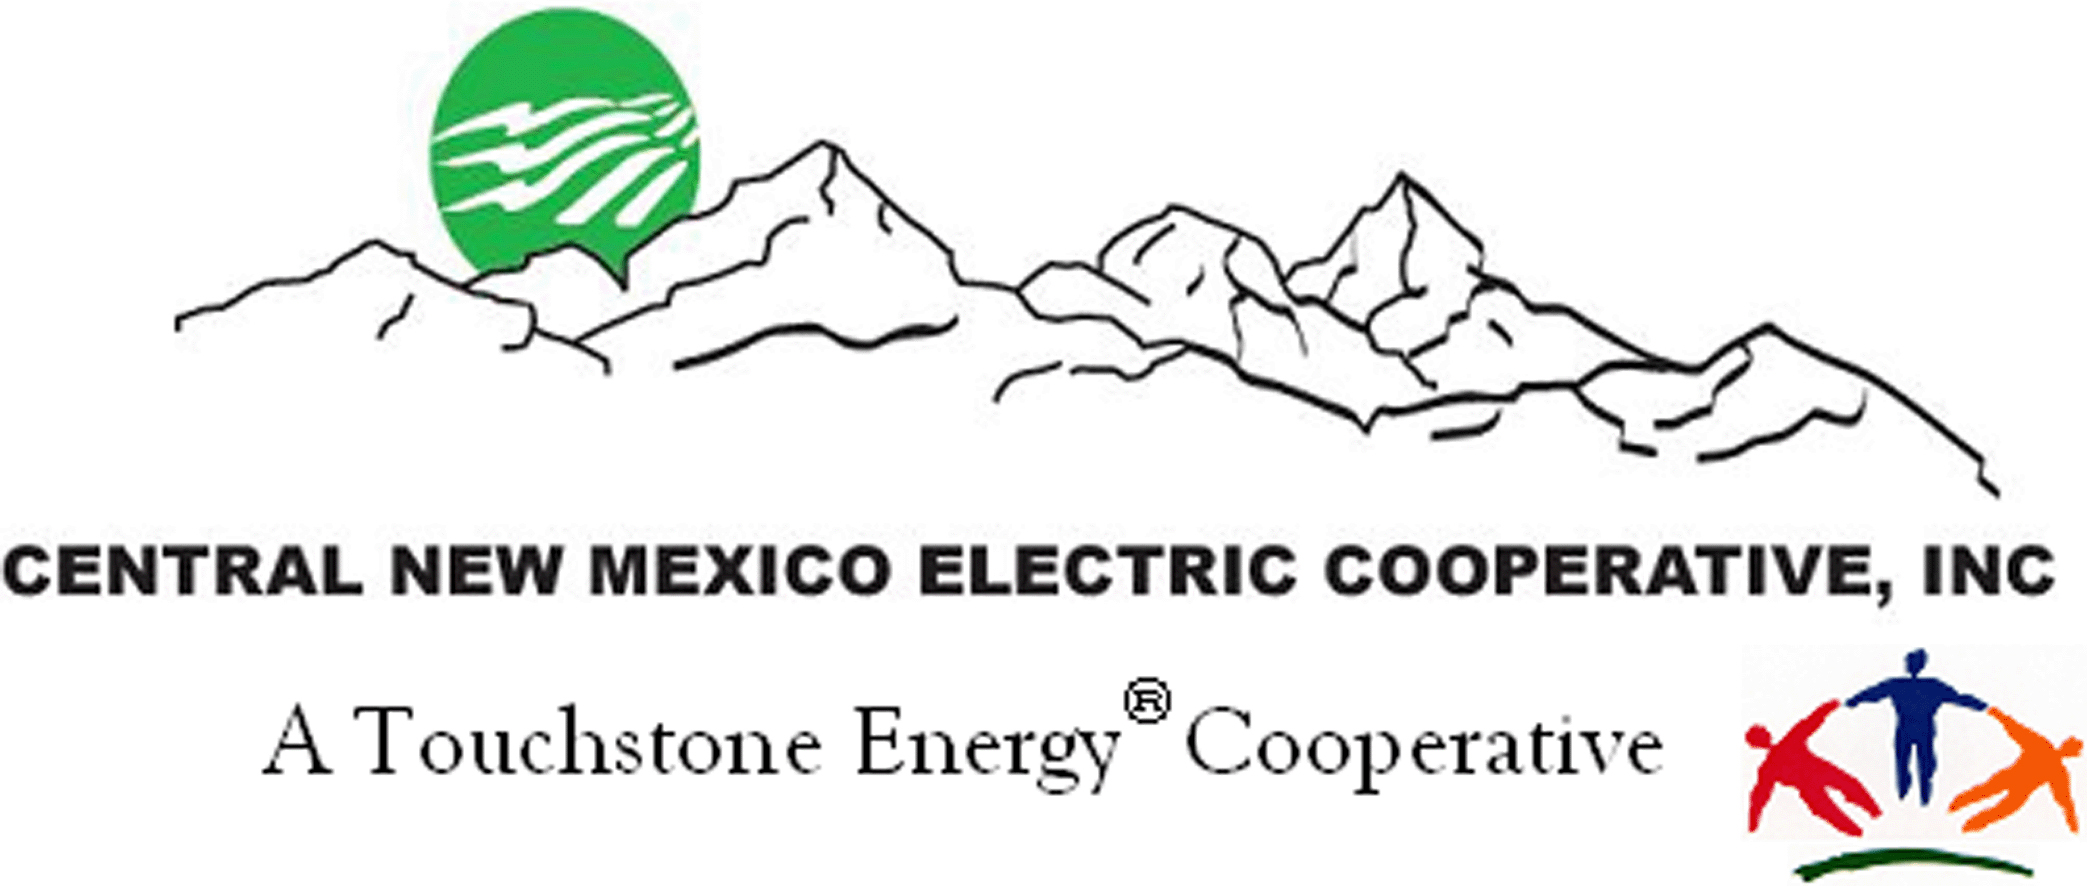 Central New Mexico Electric Cooperative, Inc.